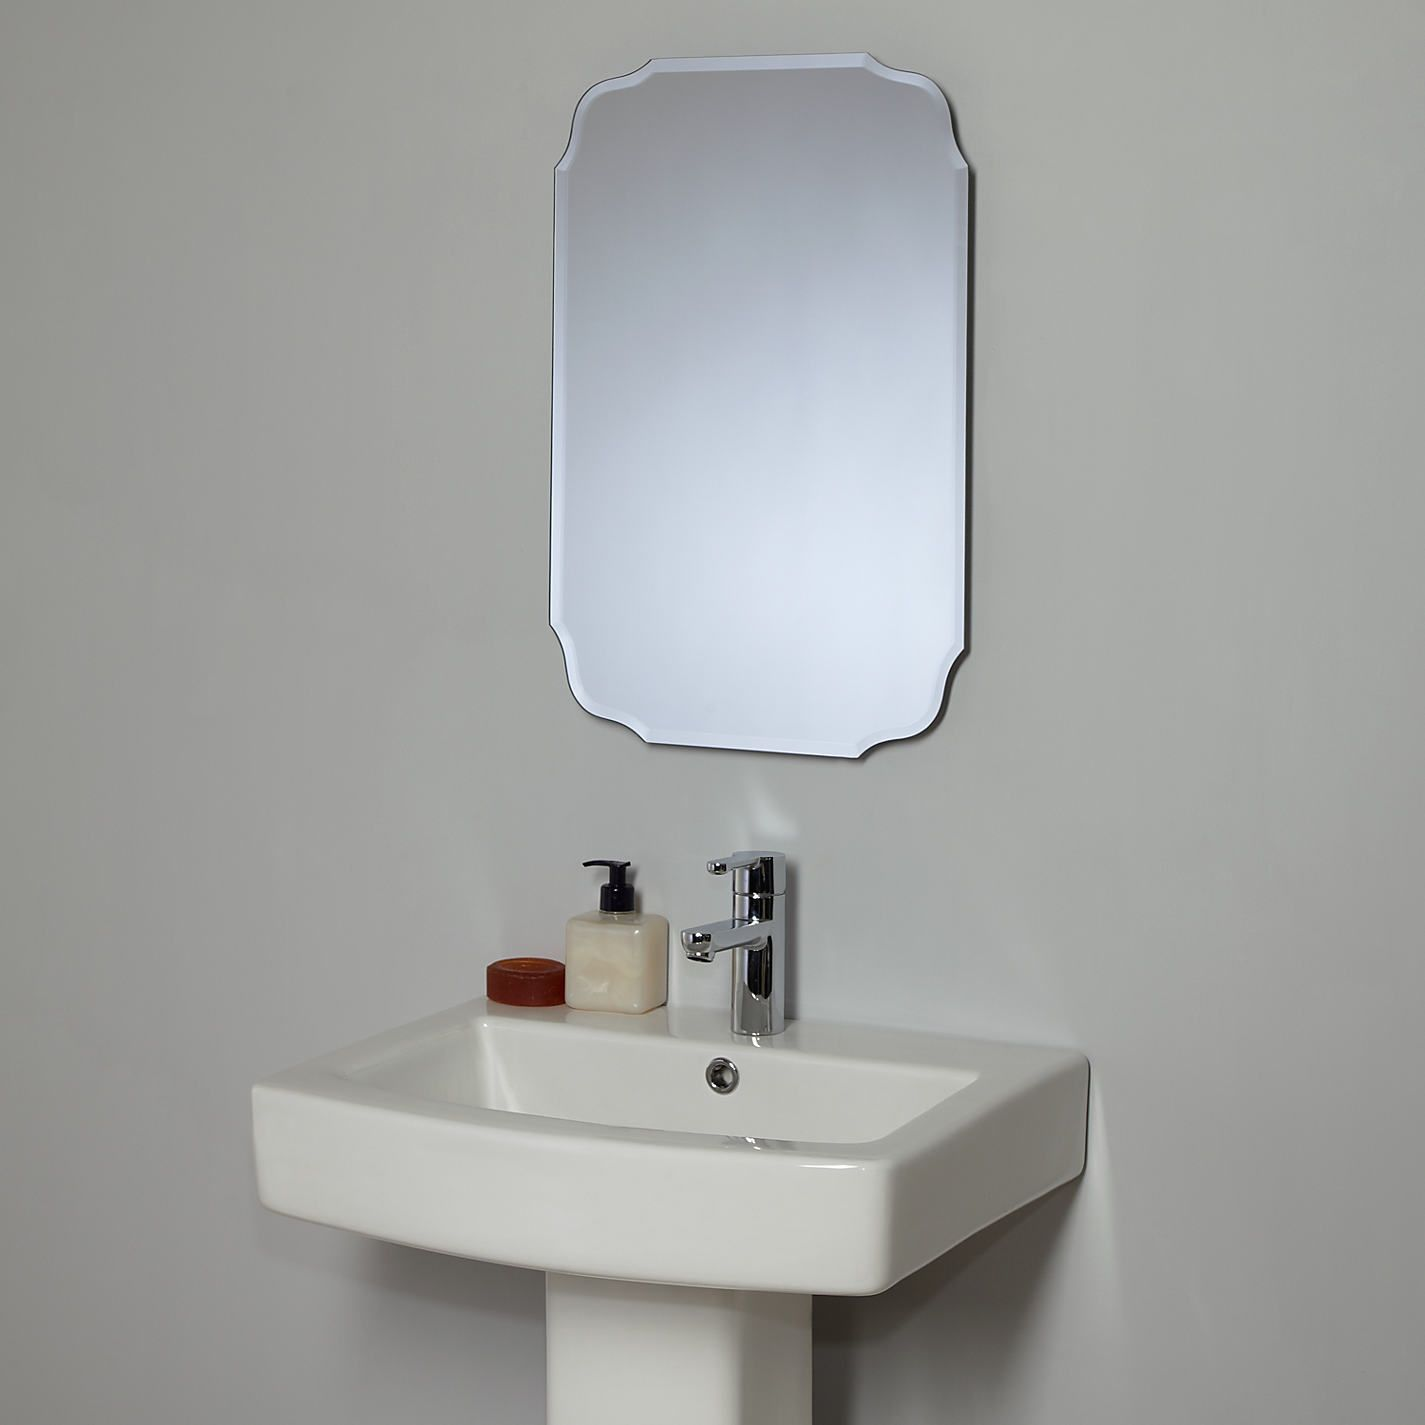 of some artistic models mirrors bathroom wall mirror